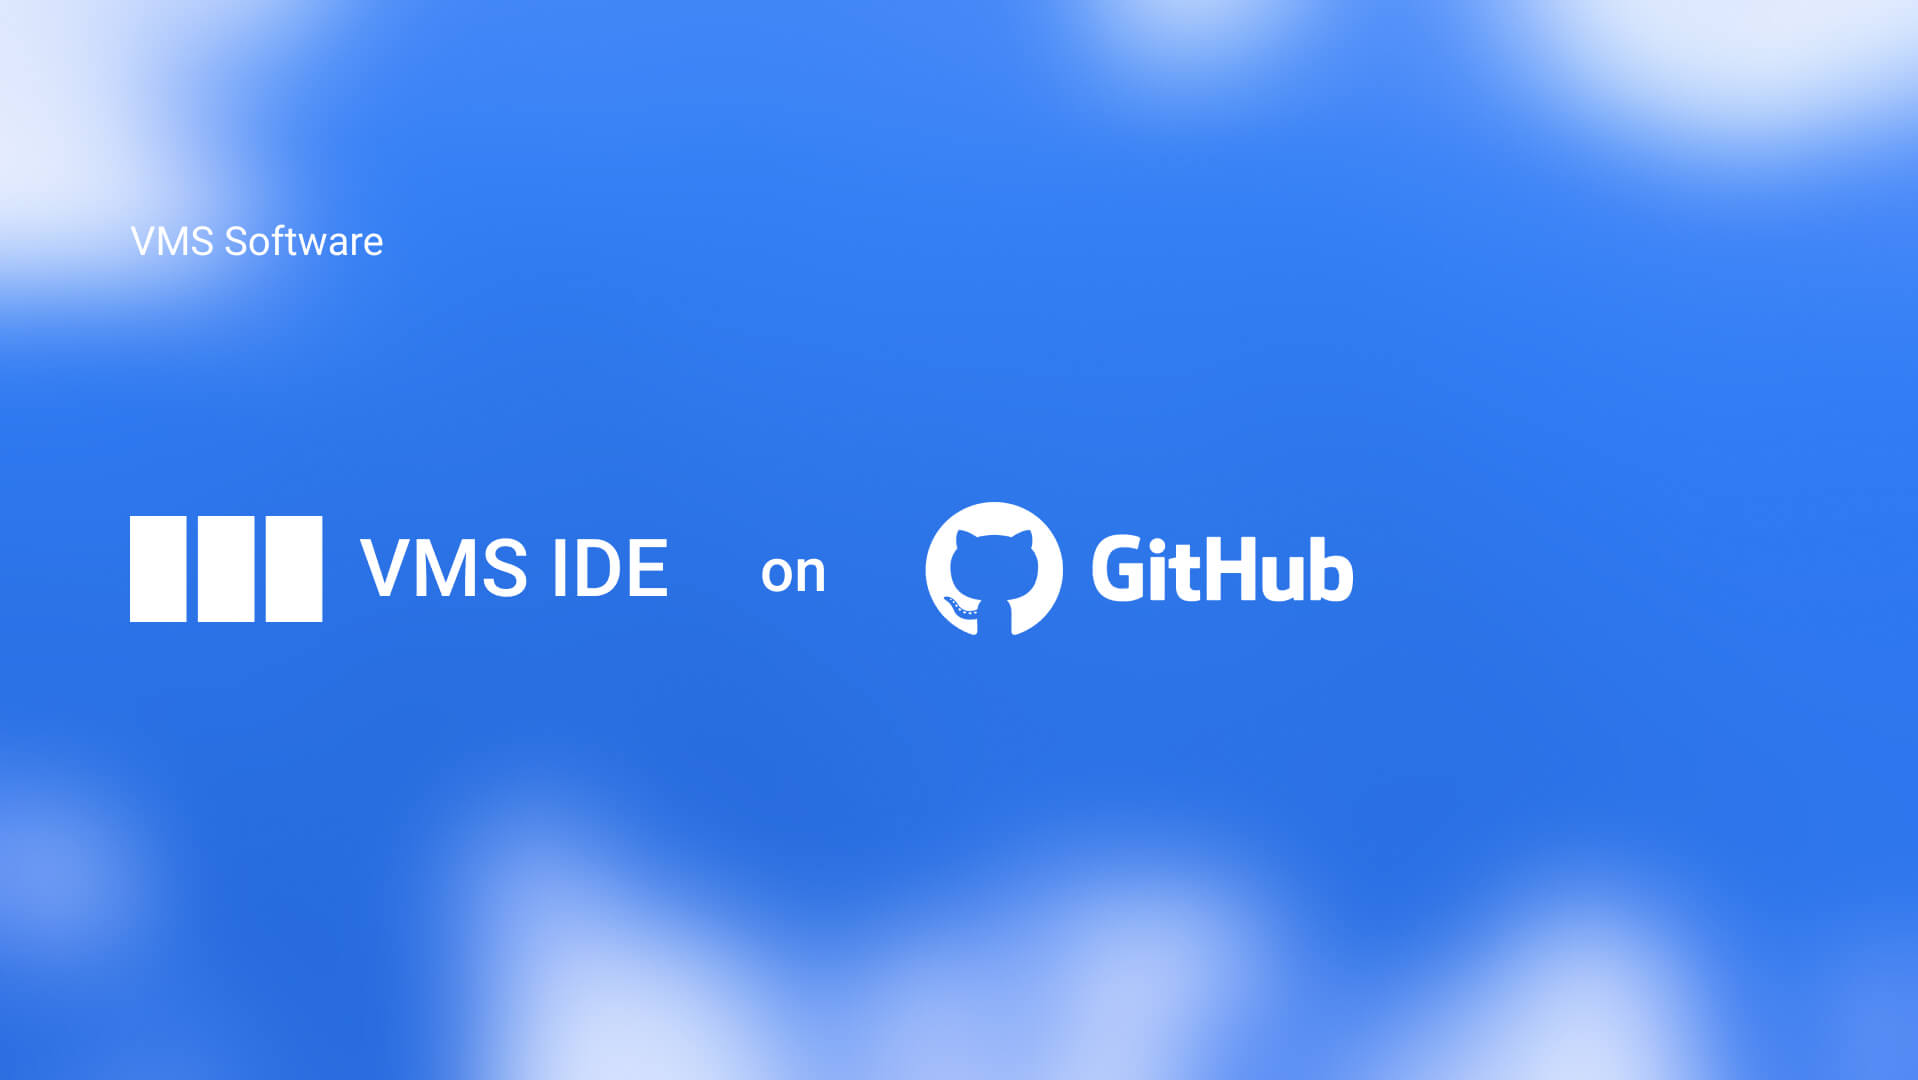 VMS IDE Code Available on Github